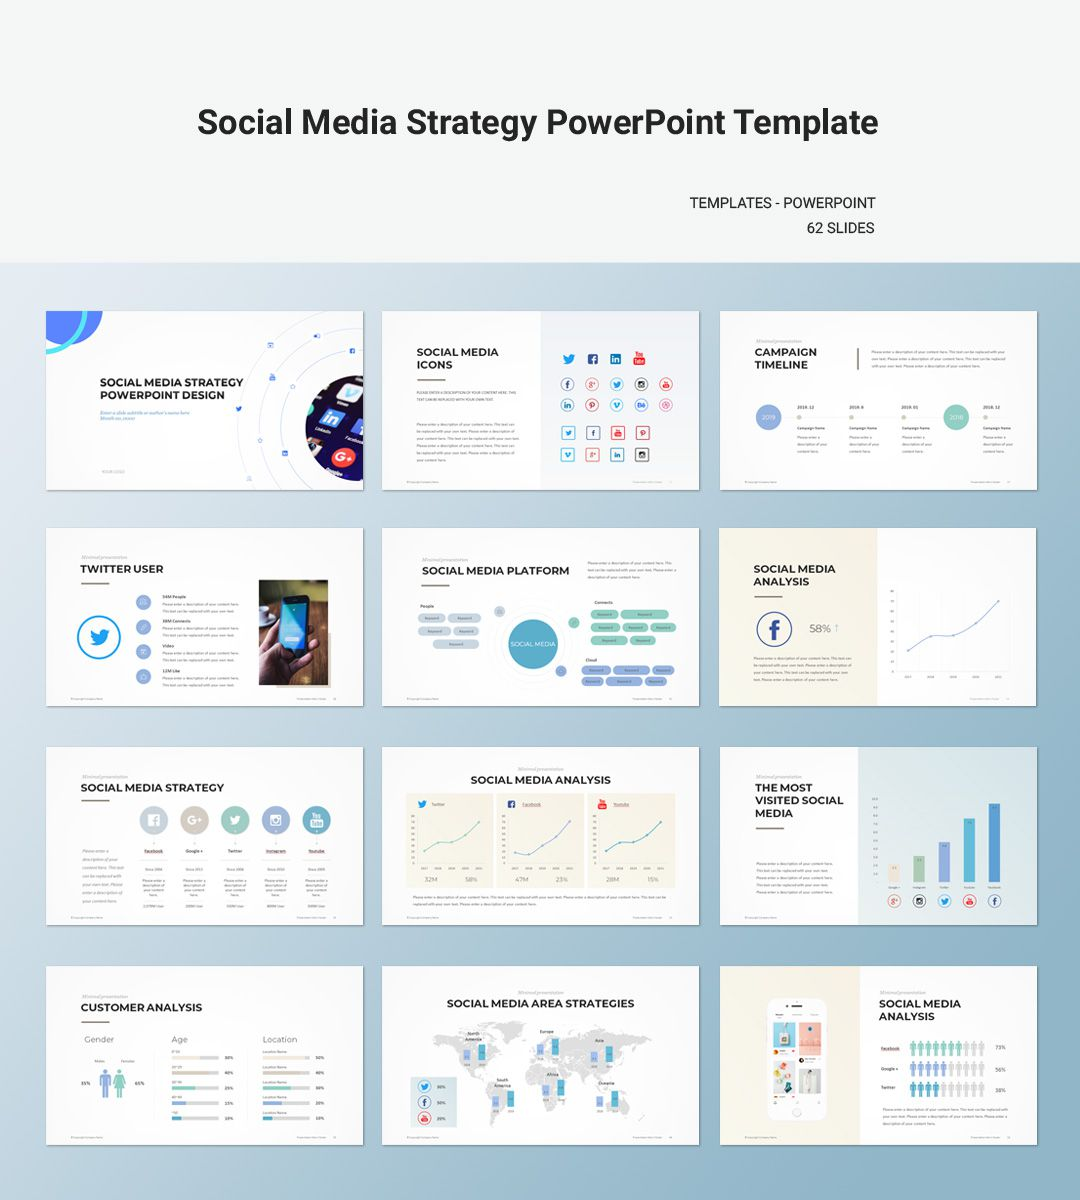 008 Top Social Media Strategy Powerpoint Template High Resolution  Marketing Plan FreeFull